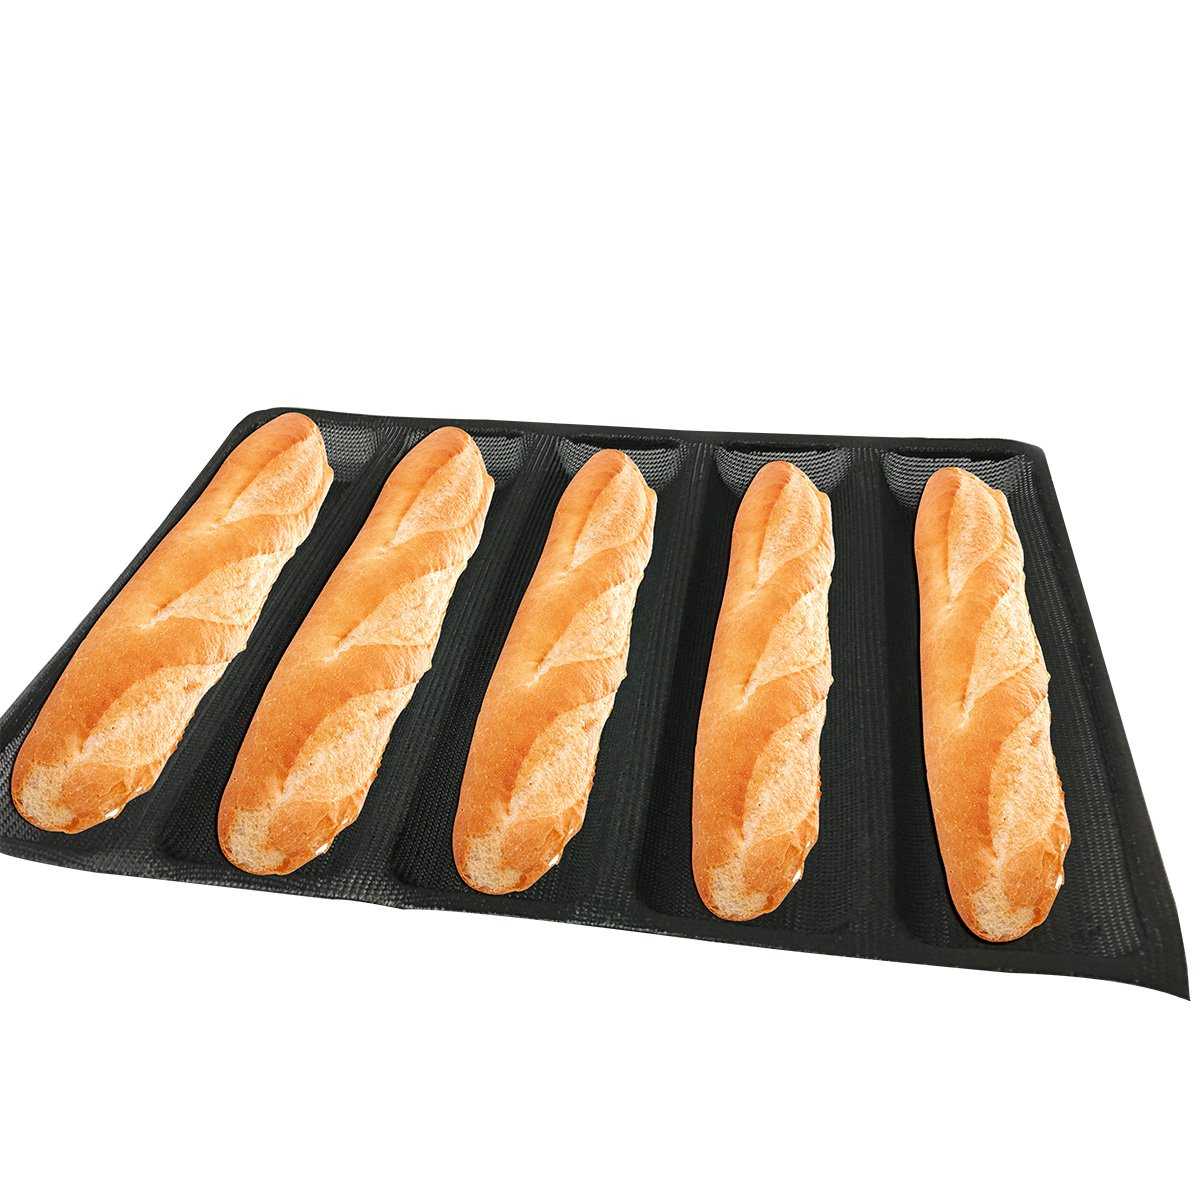 """Bluedrop Hot Dog Molds Silicone Bread Forms Non Stick Bakery Trays For Sub Roll Toasting 5 Loaves 12"""" Sheets"""